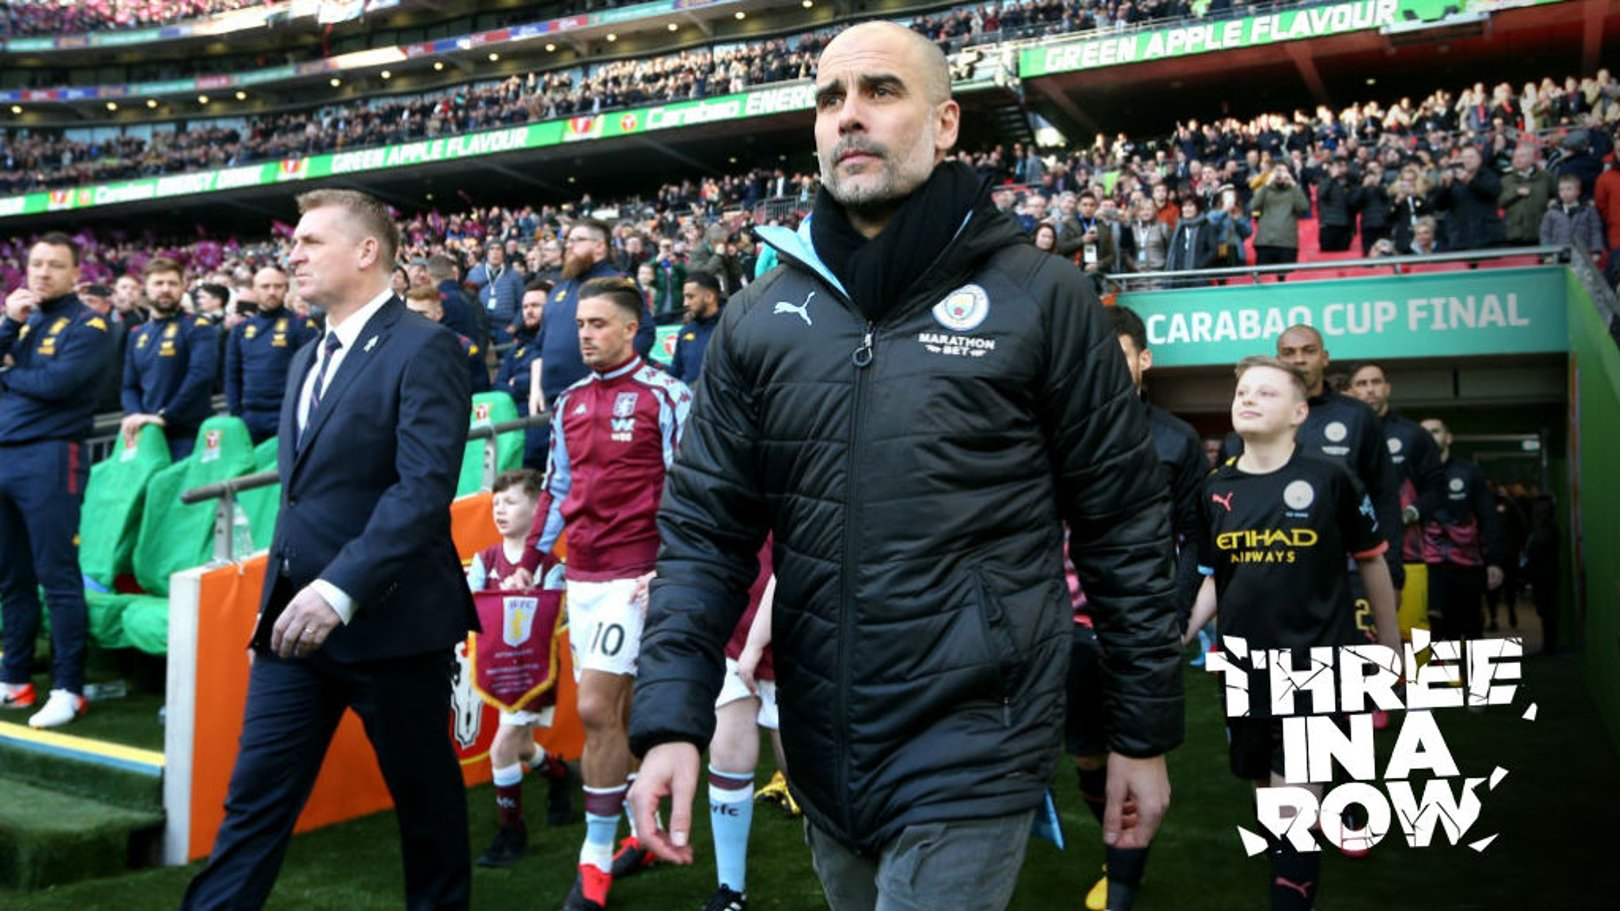 HERE WE GO: Pep leads his side out at Wembley